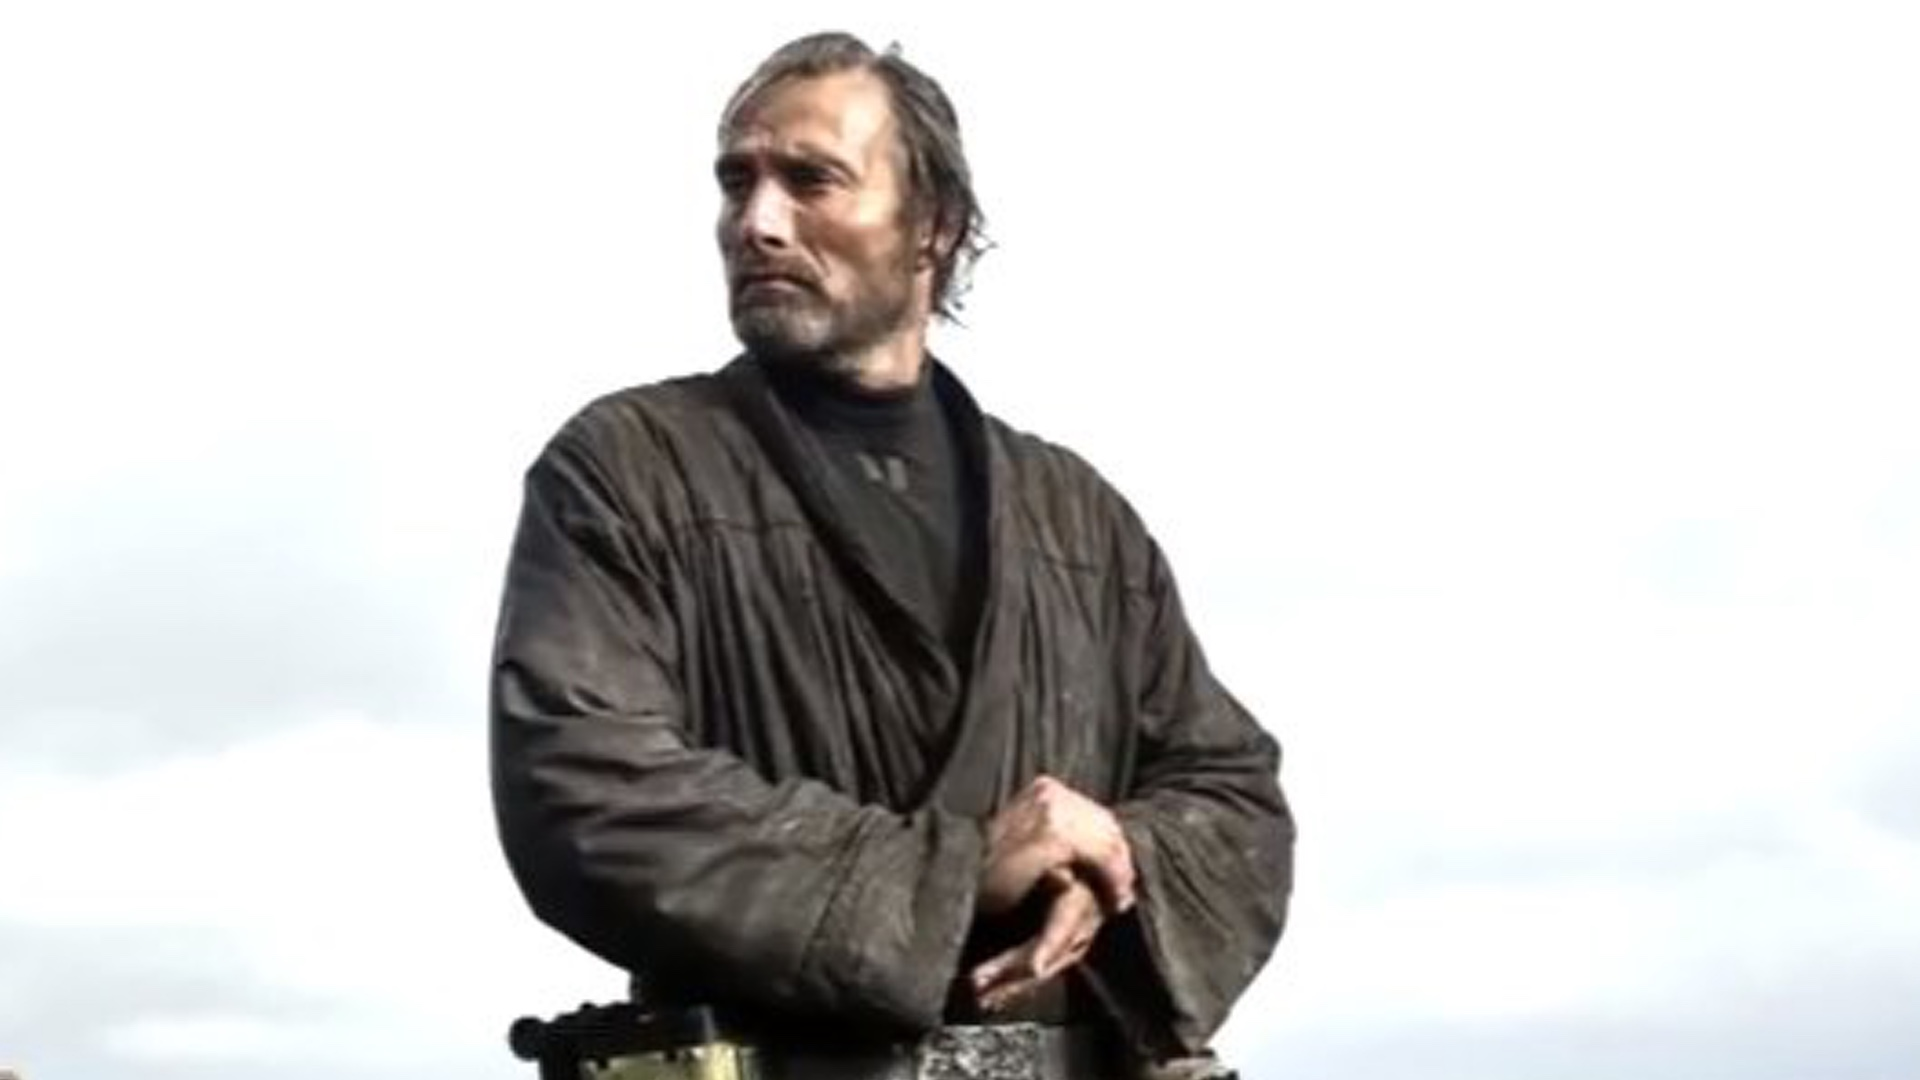 First Look At Mads Mikkelsen As Galen Erso In Star Wars Rogue One